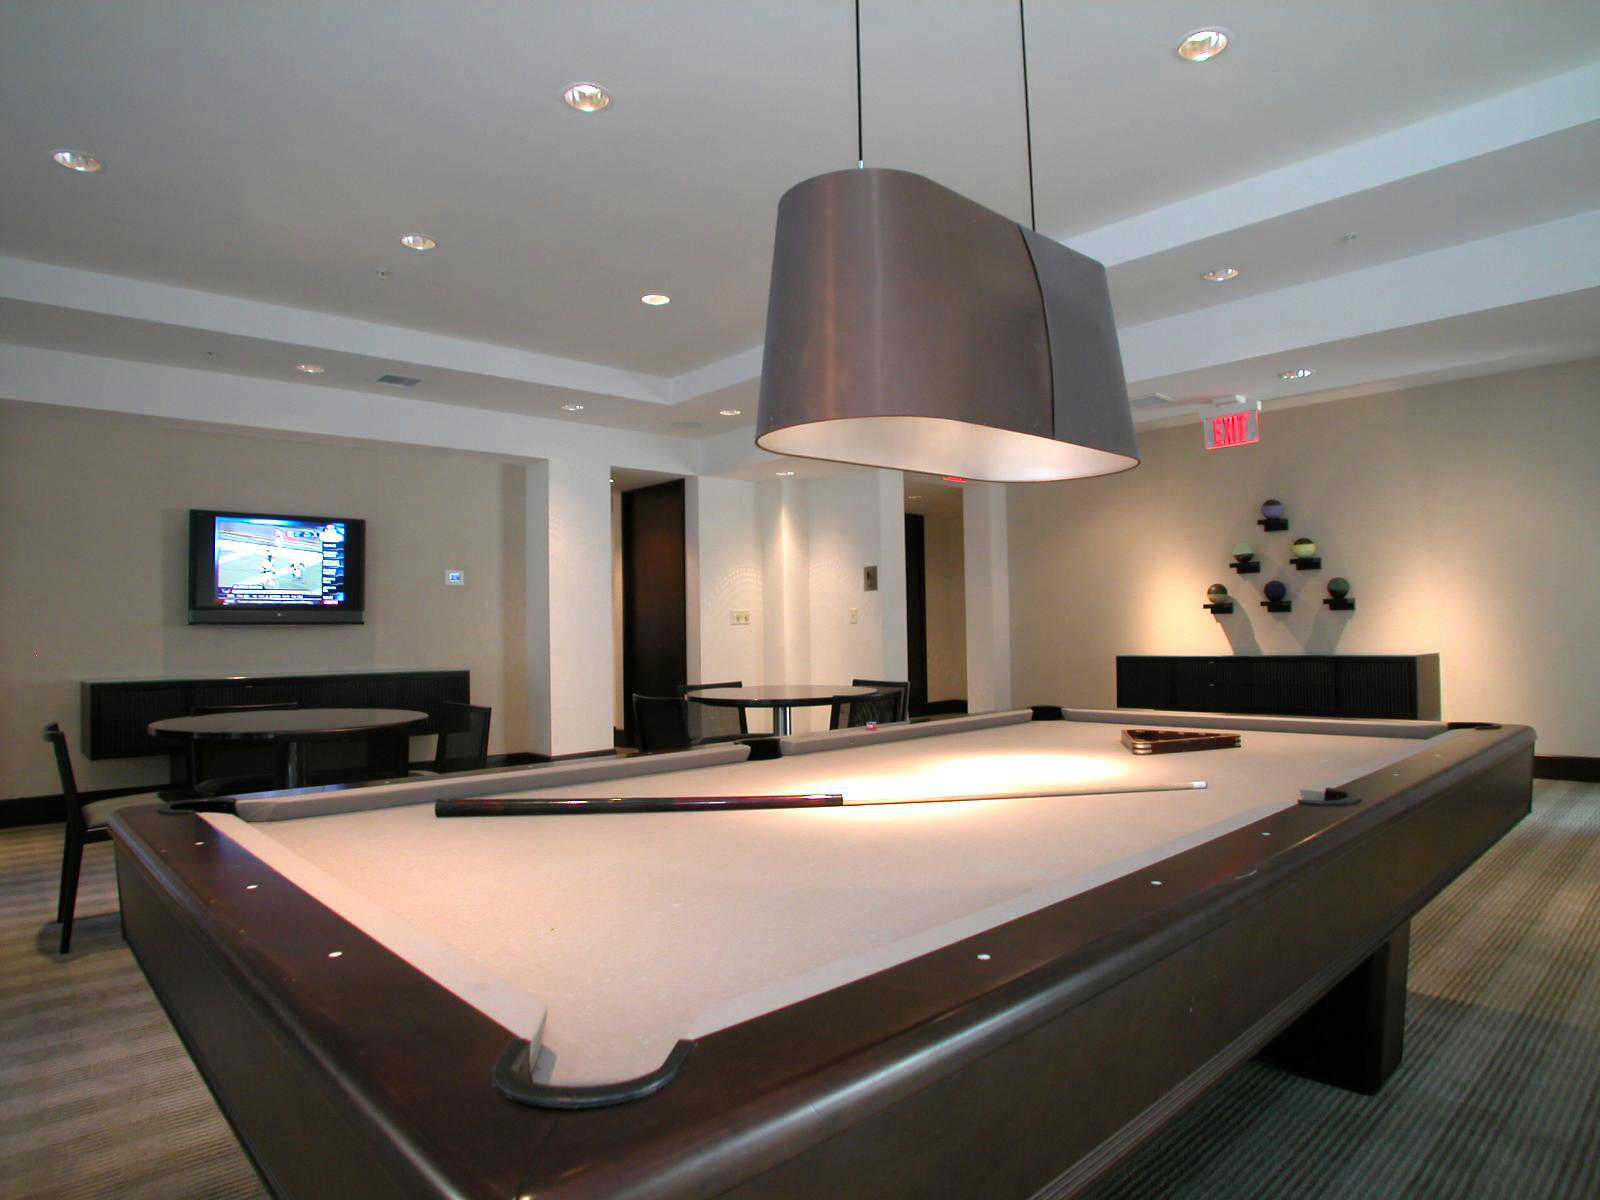 Bathroominteresting Billiard Room Decor Wall Billiard Room Decor